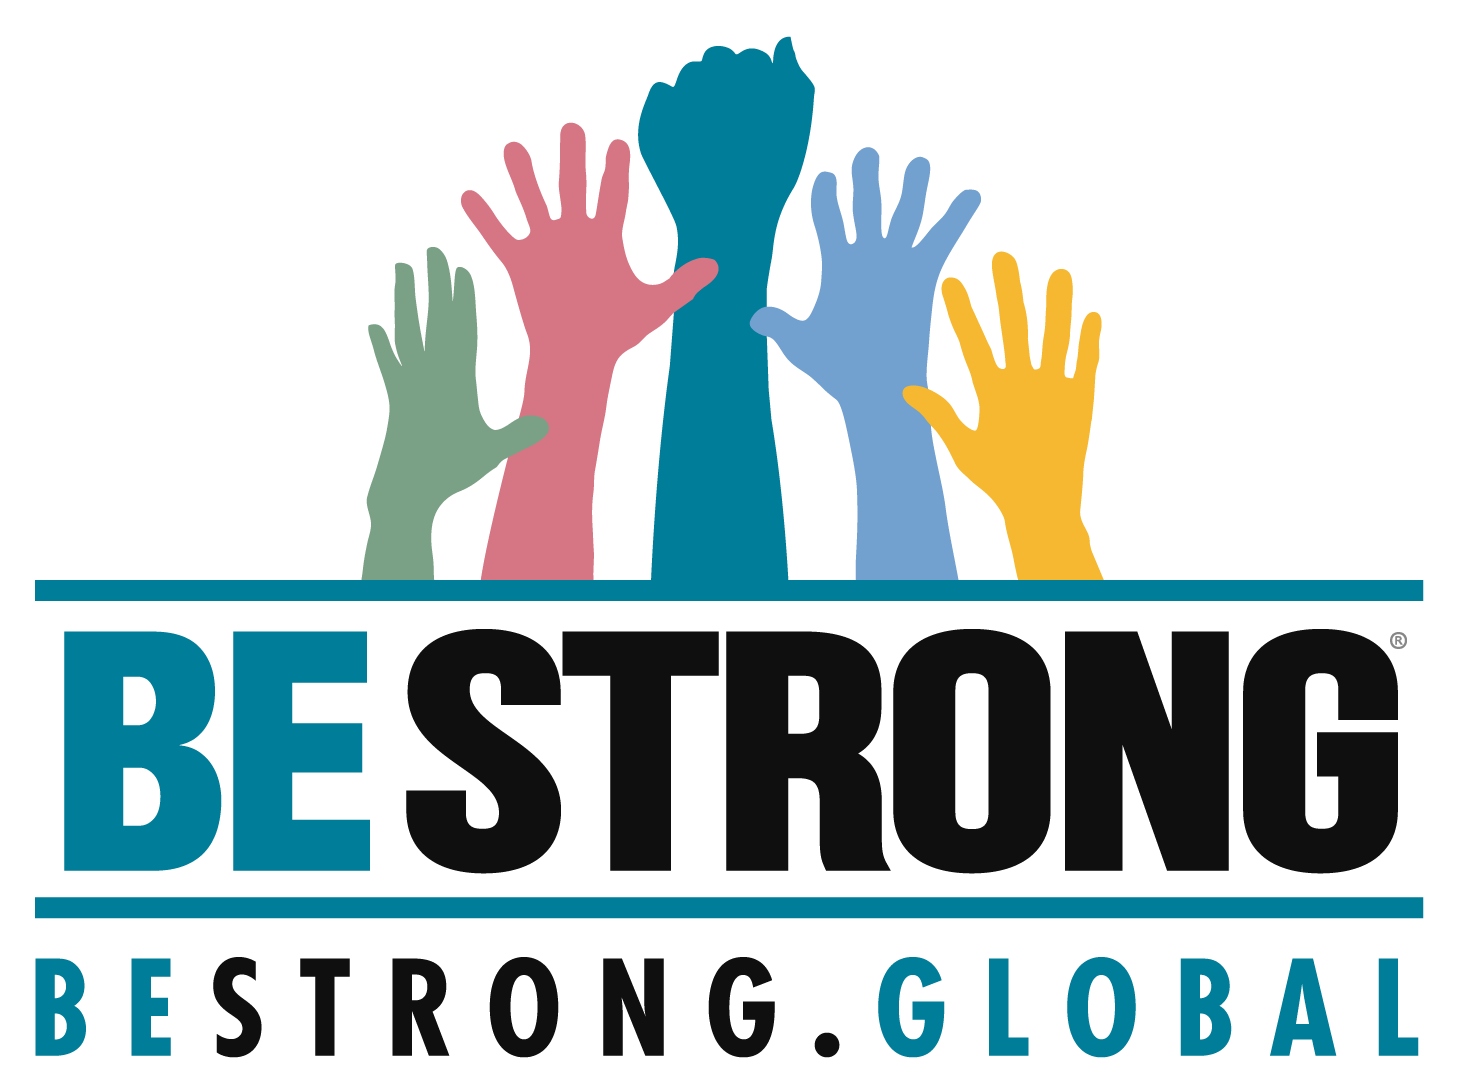 Be Strong Global logo